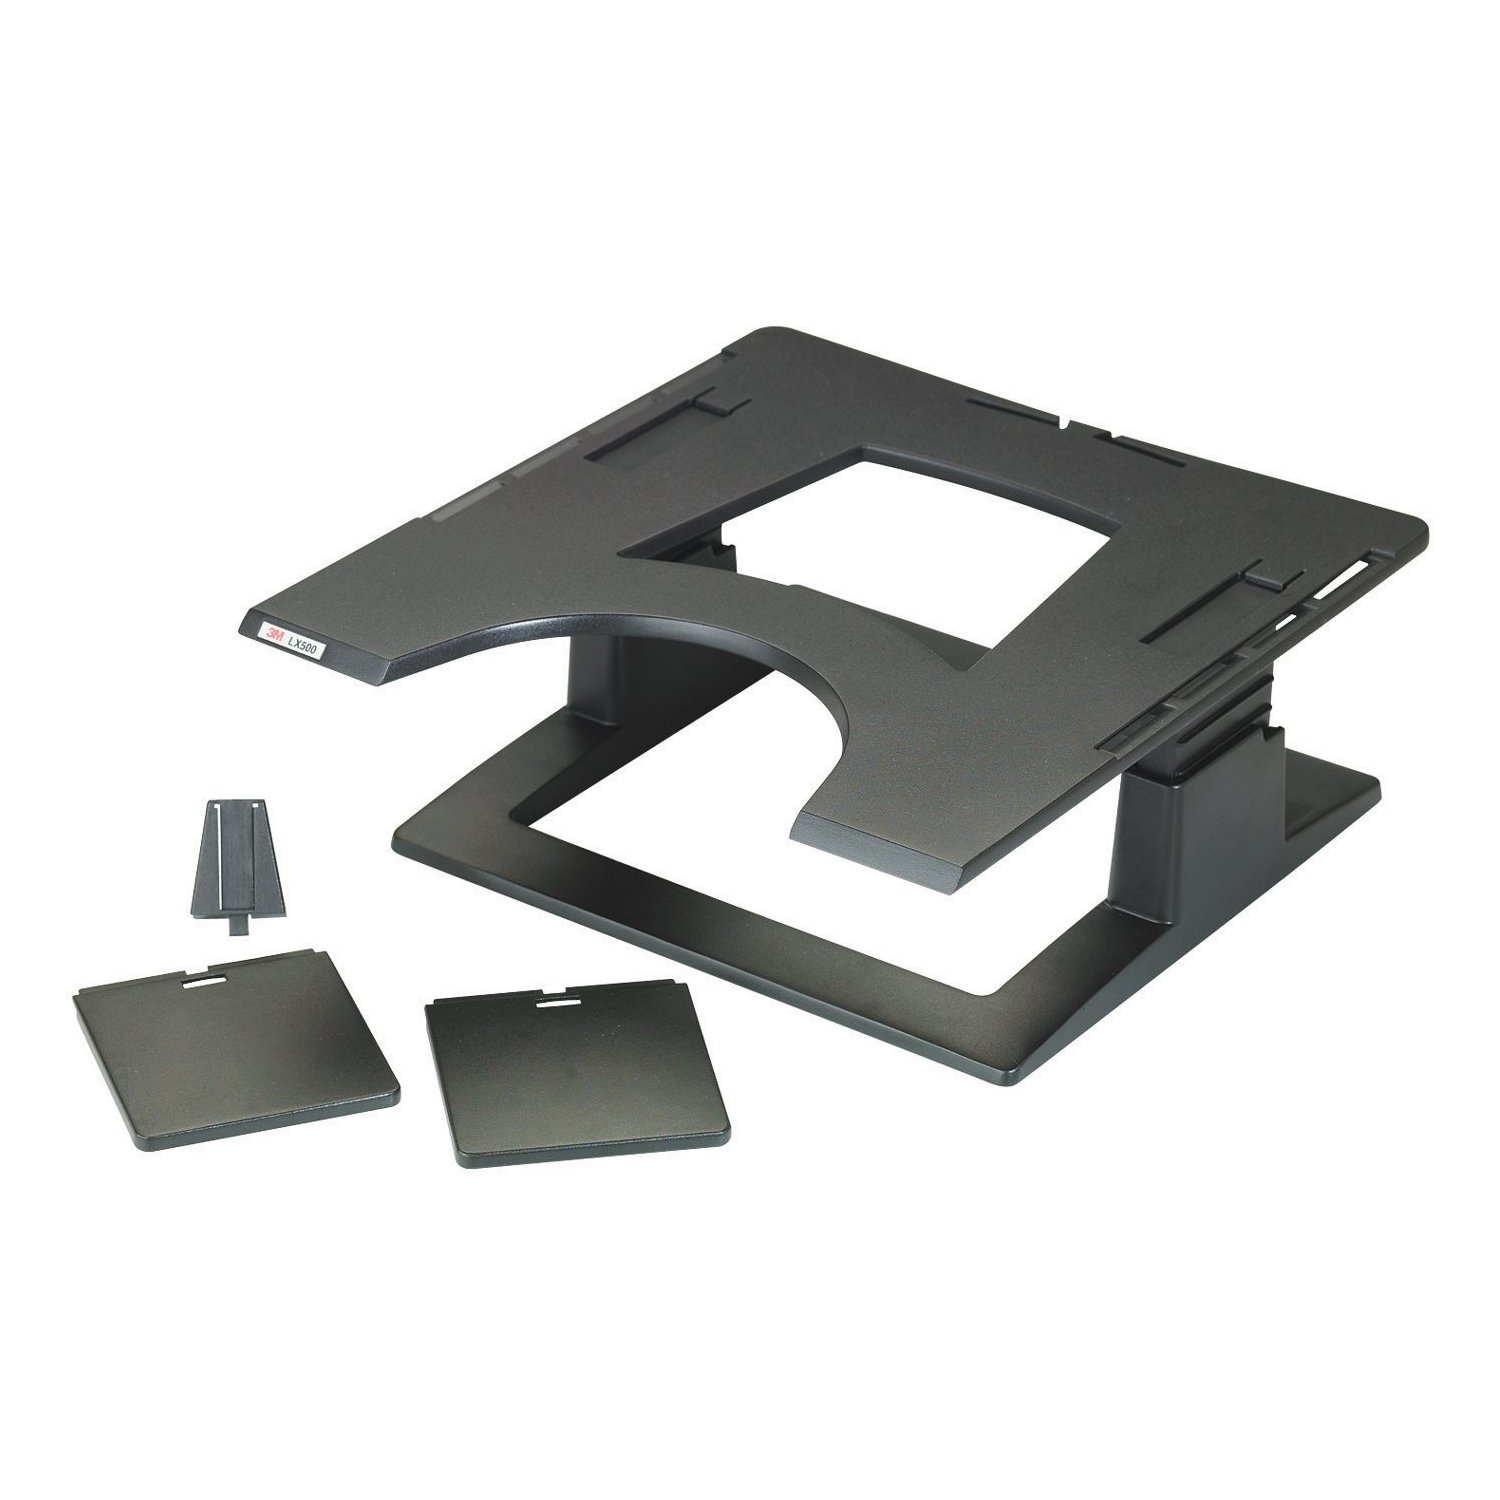 3M FT510091687 Black notebook arm/stand